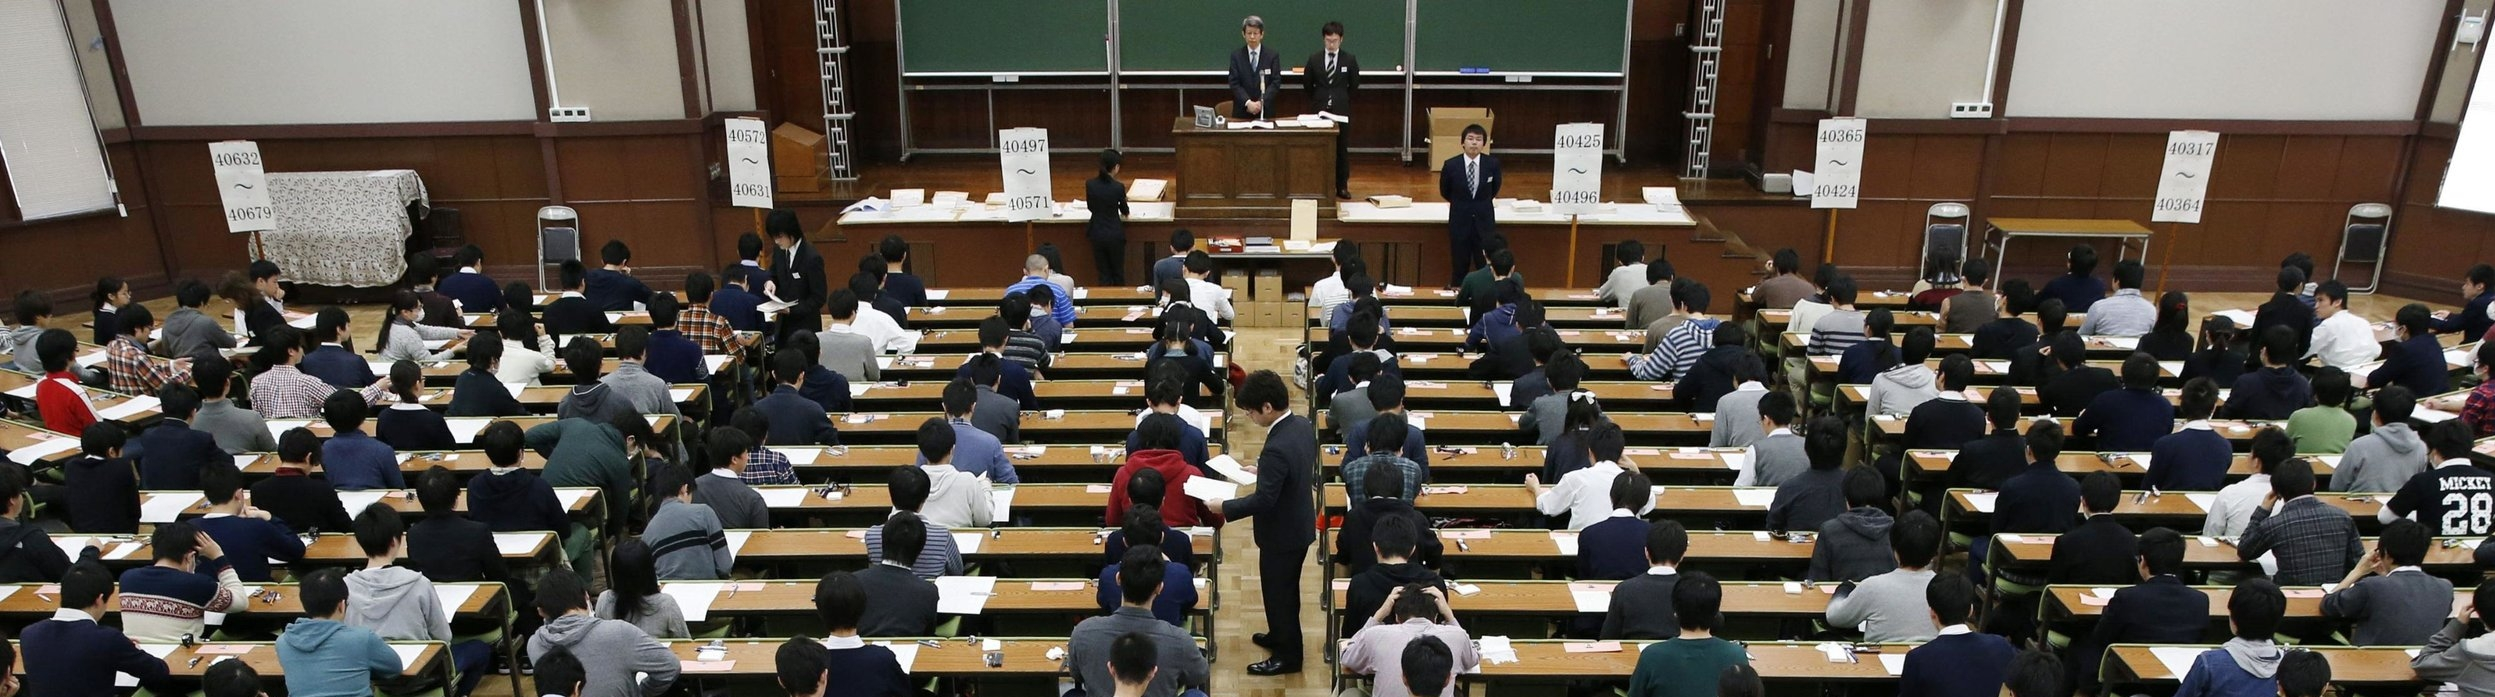 Students wait for their entrance examination to start at the University of Tokyo's Hongo campus. / KYODO